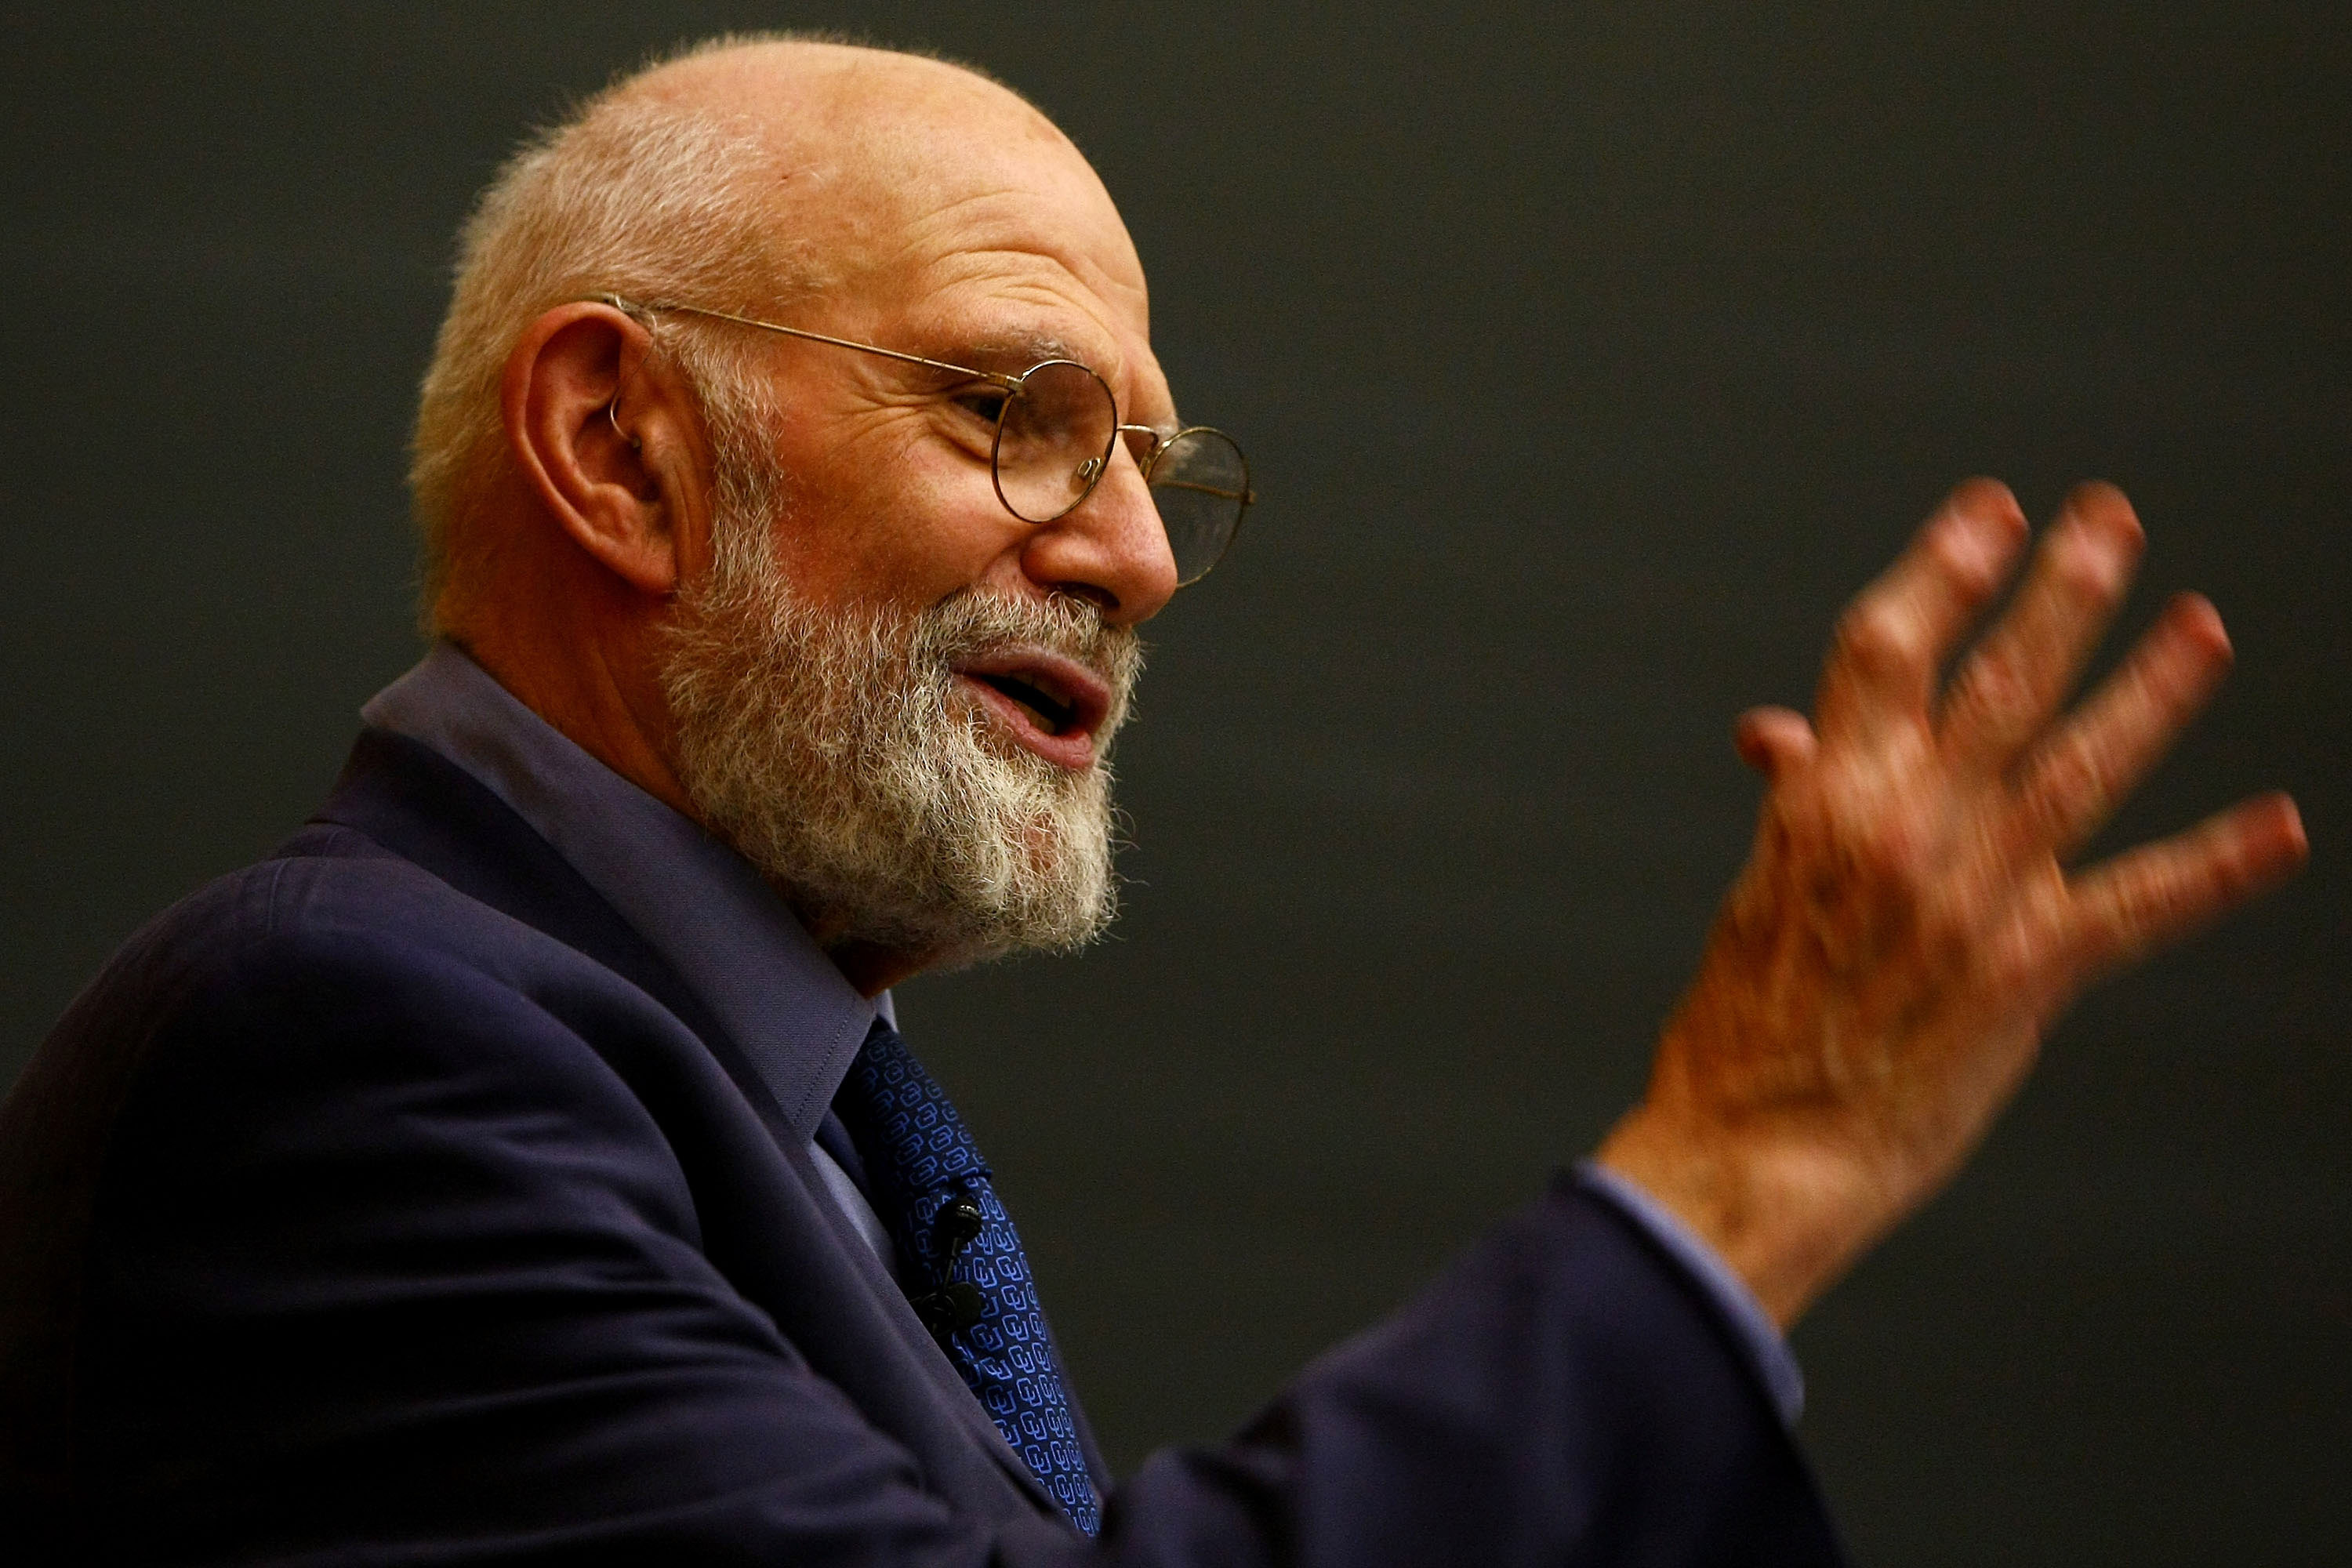 8 Beautiful Oliver Sacks Quotes That Illustrate His Inspiring Mission To Understand The Mind